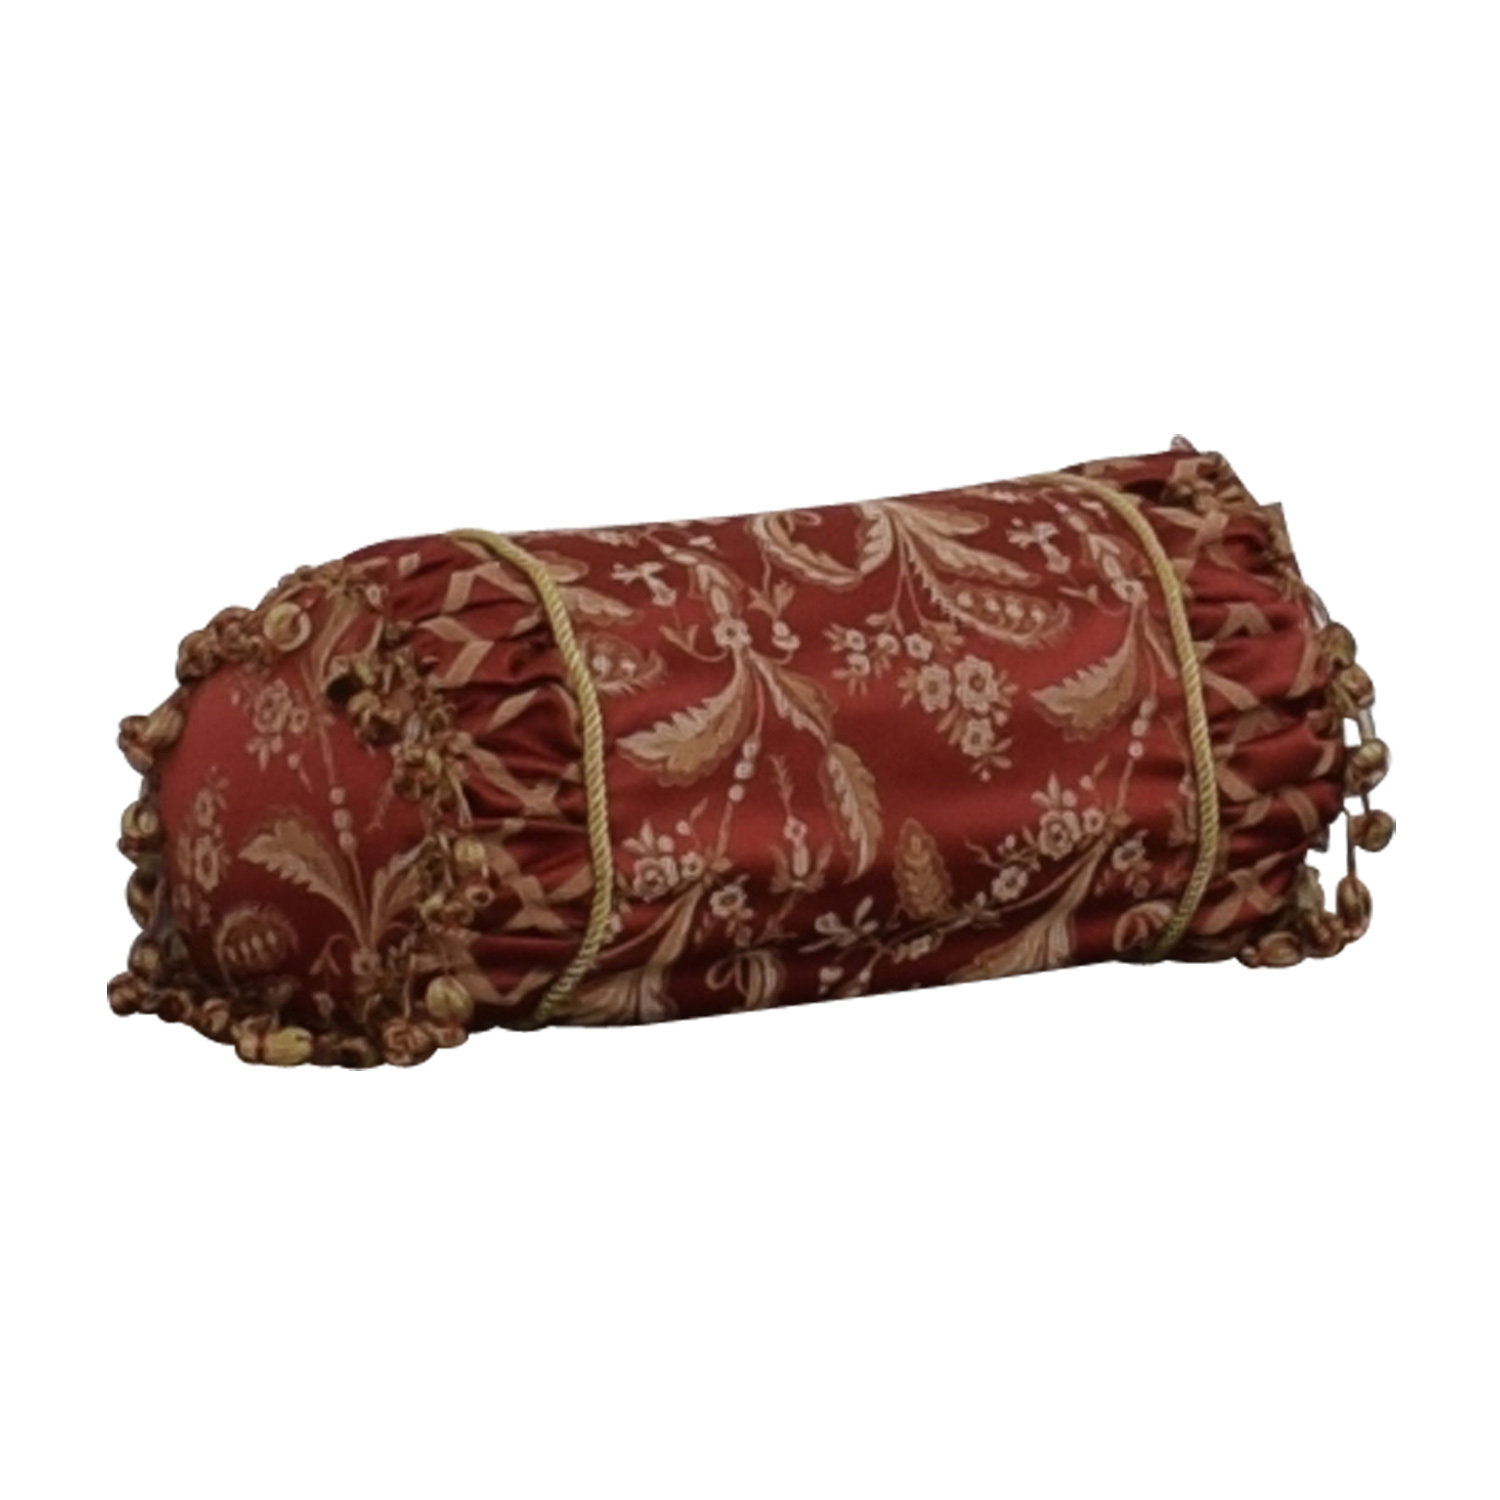 Custom Red and Gold  Decorative Neck Pillow on sale